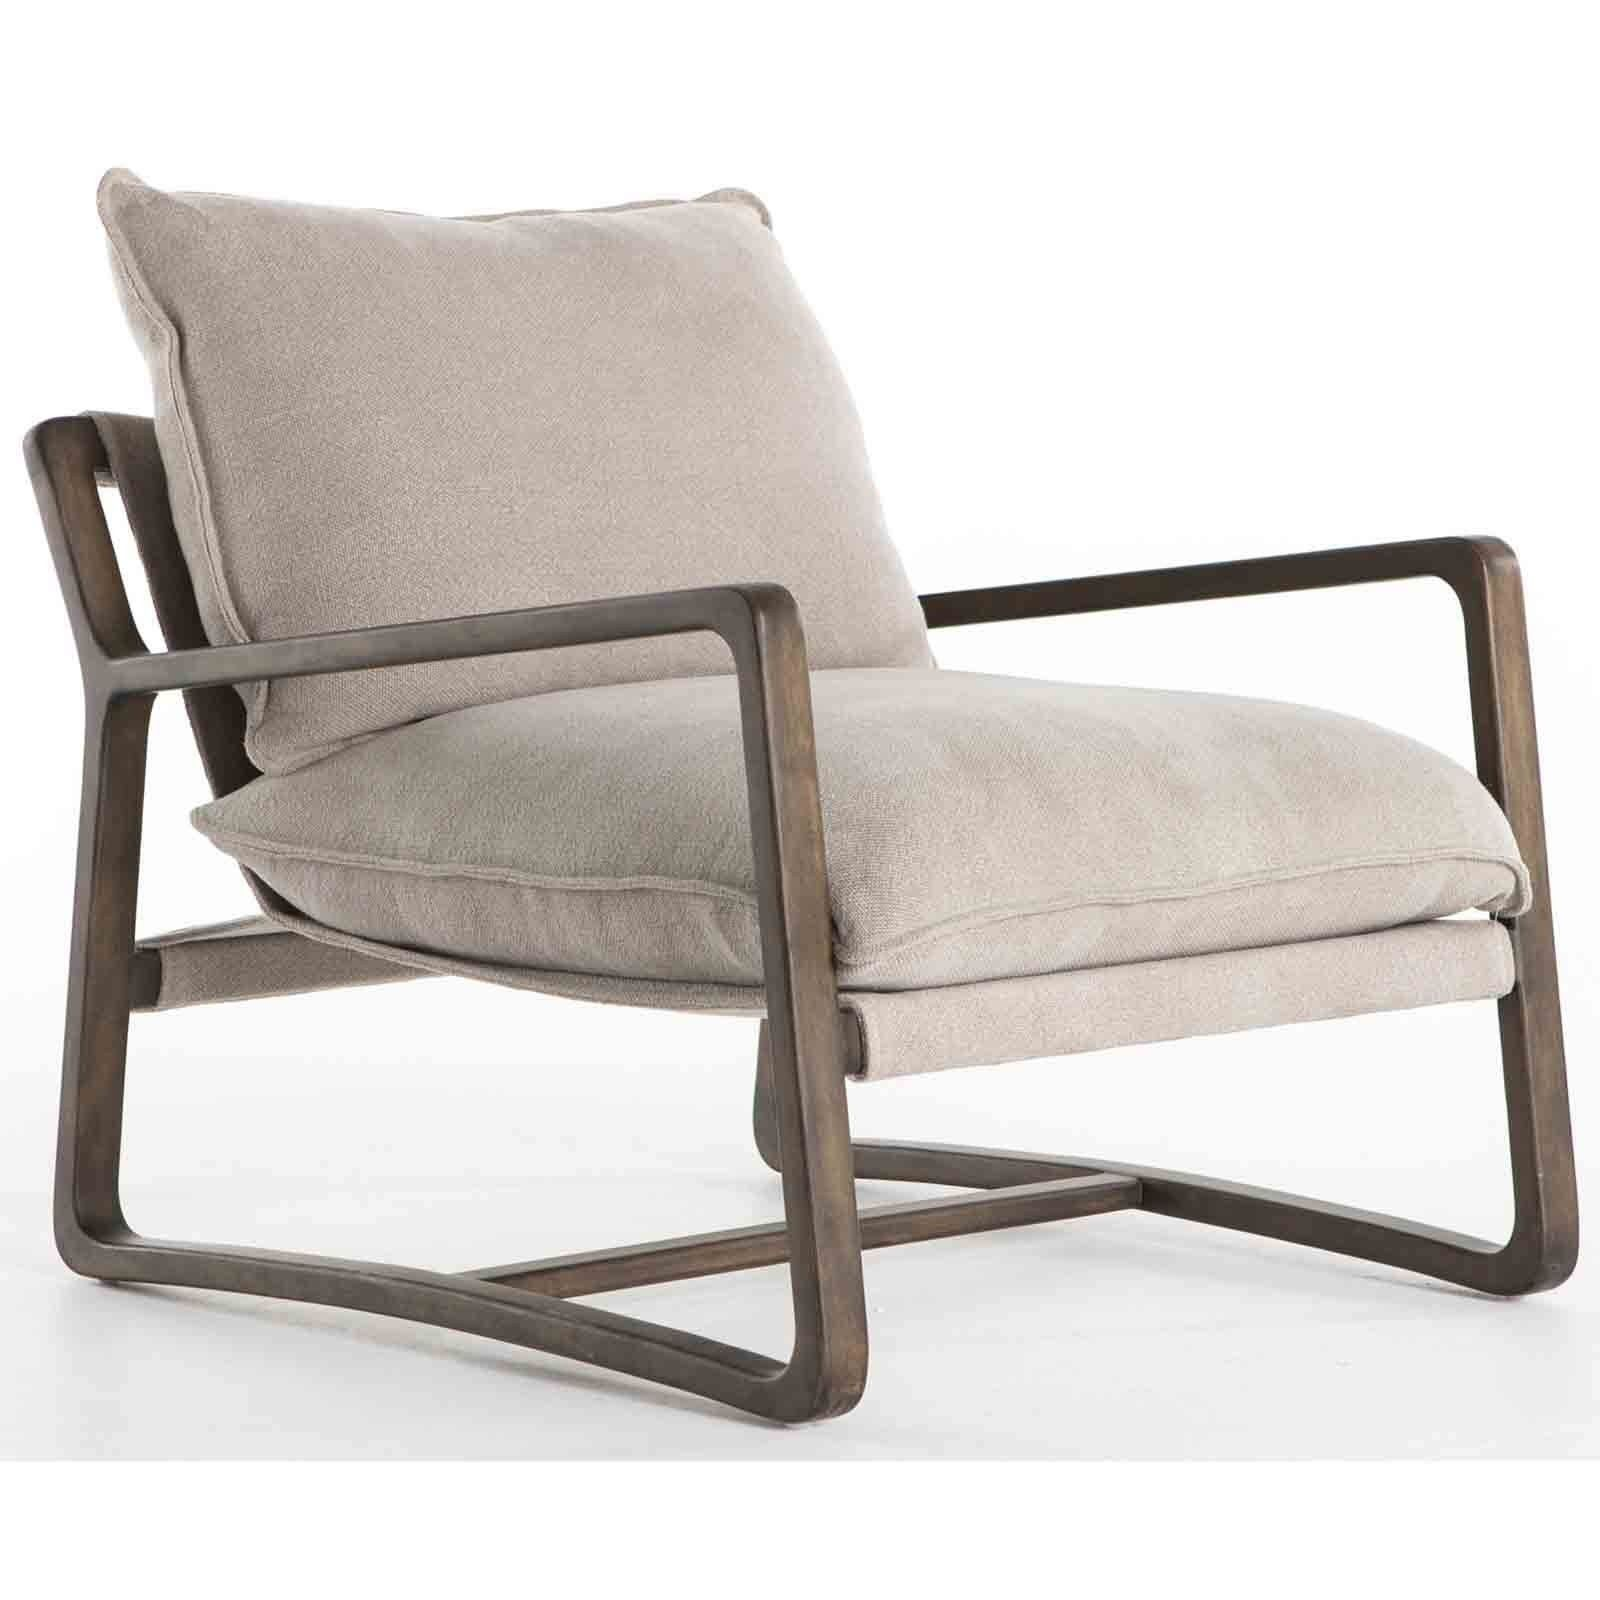 Enjoyable Ace Chair Cobblestone Jute Wood Arm Chair Accent Chairs Evergreenethics Interior Chair Design Evergreenethicsorg